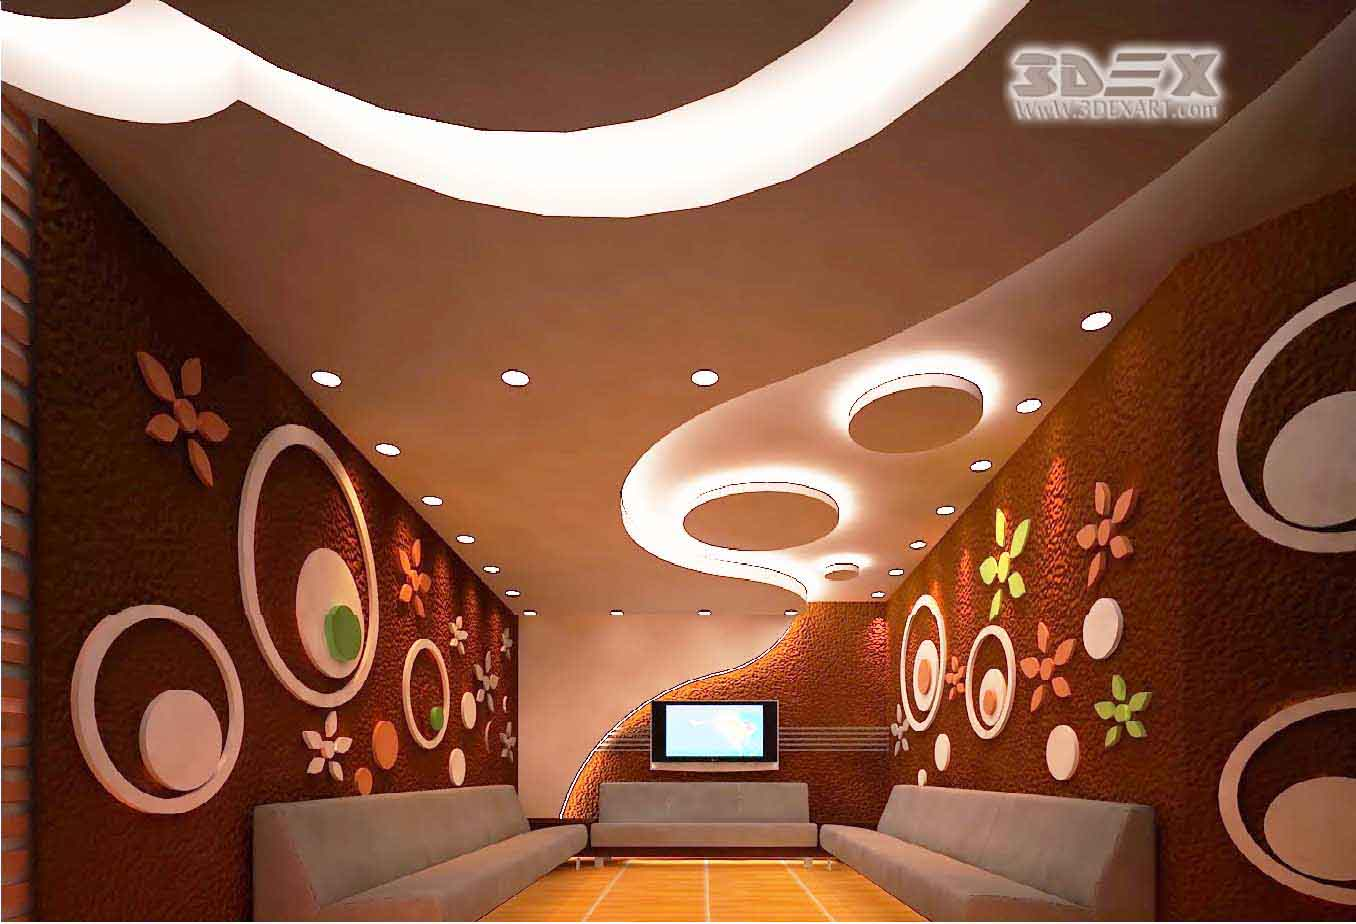 New POP false ceiling designs 2019, POP roof design for ...